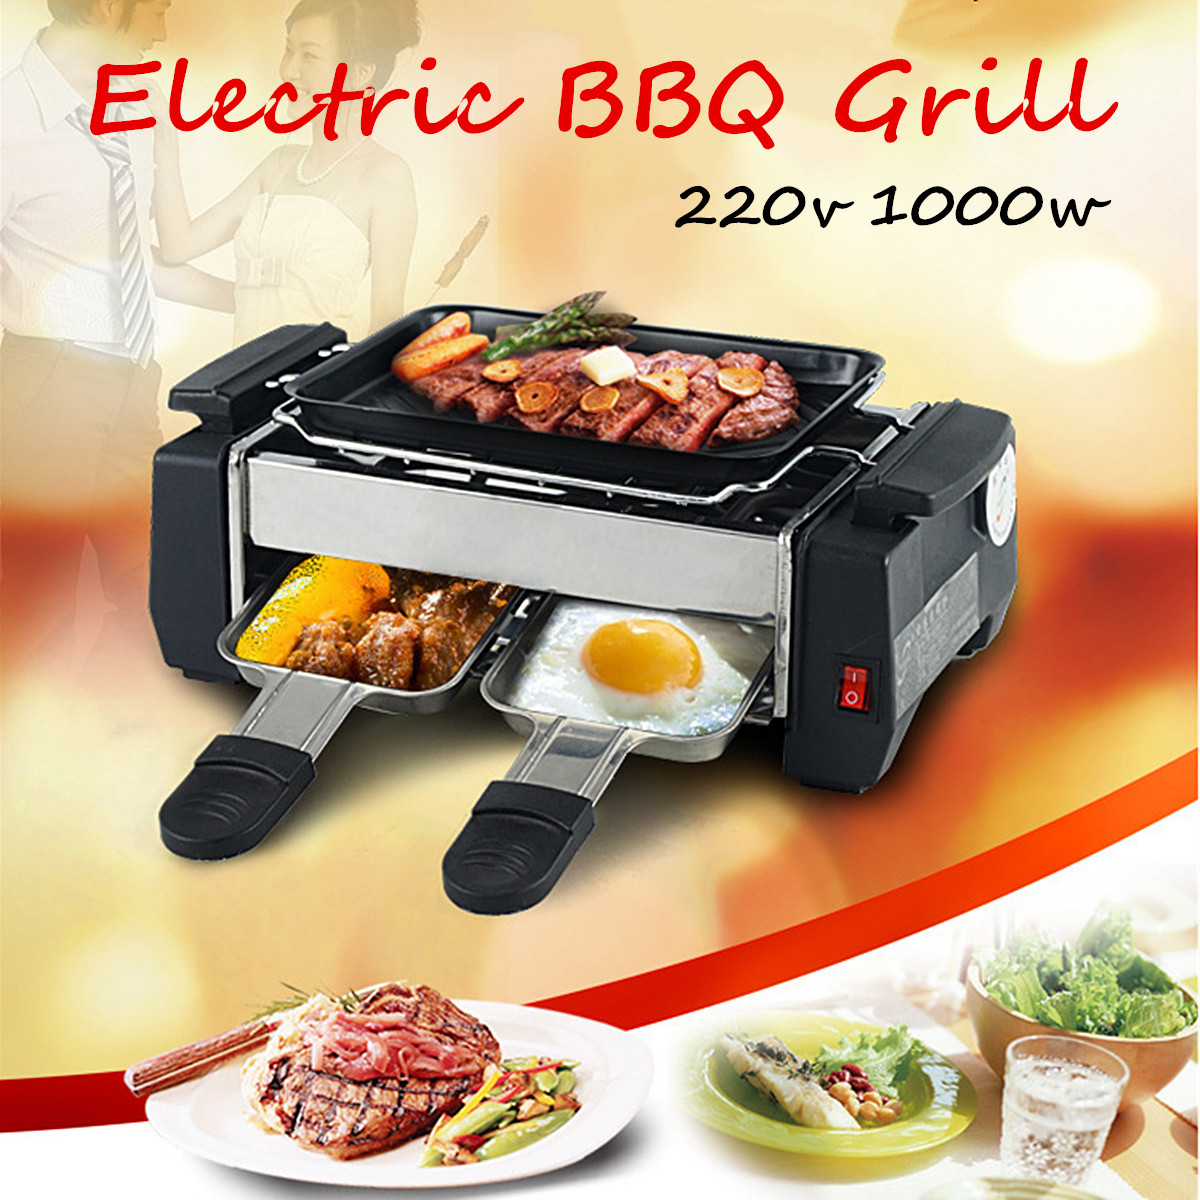 Portable 1000W 220V Non-Stick Electric Barbeque Grill Griddle BBQ Teppanyaki Set BBQ Grill